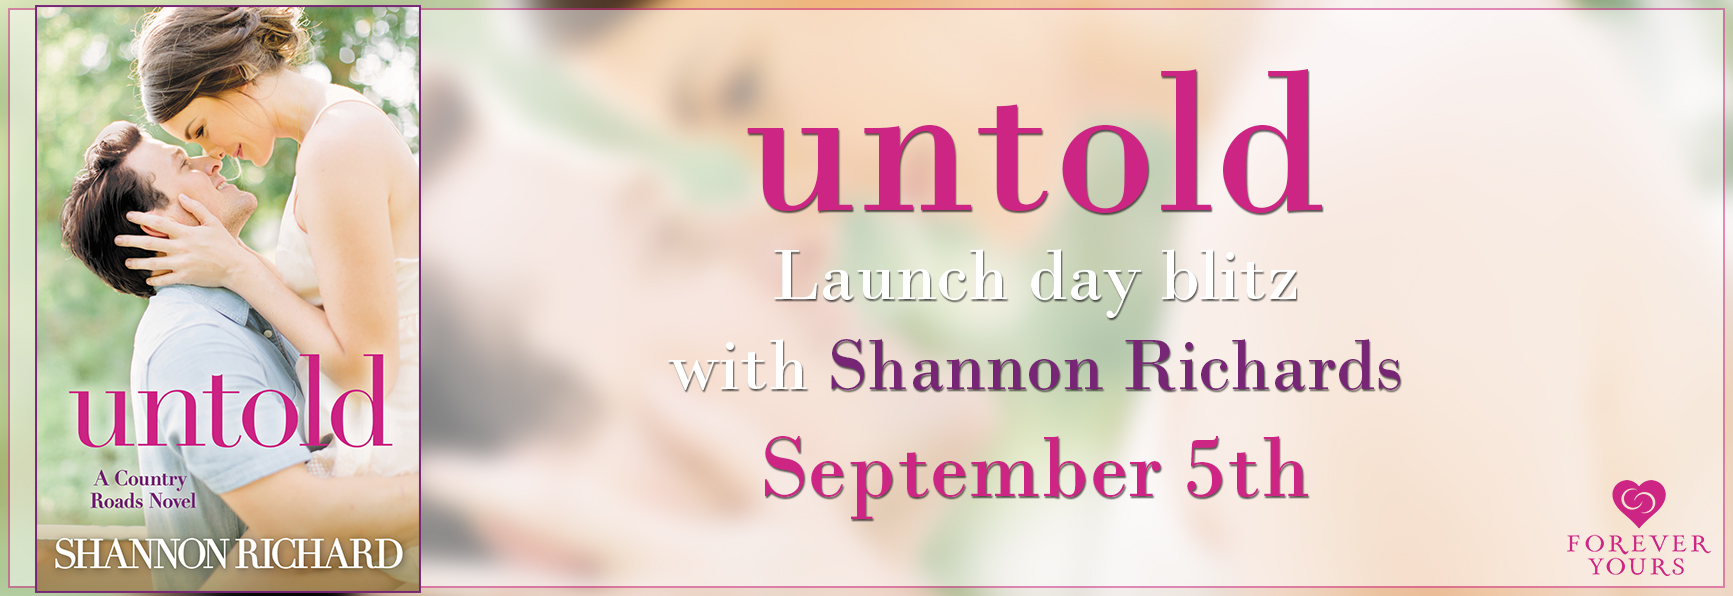 Enter to win 1 of 15 free ebook downloads of Untold!